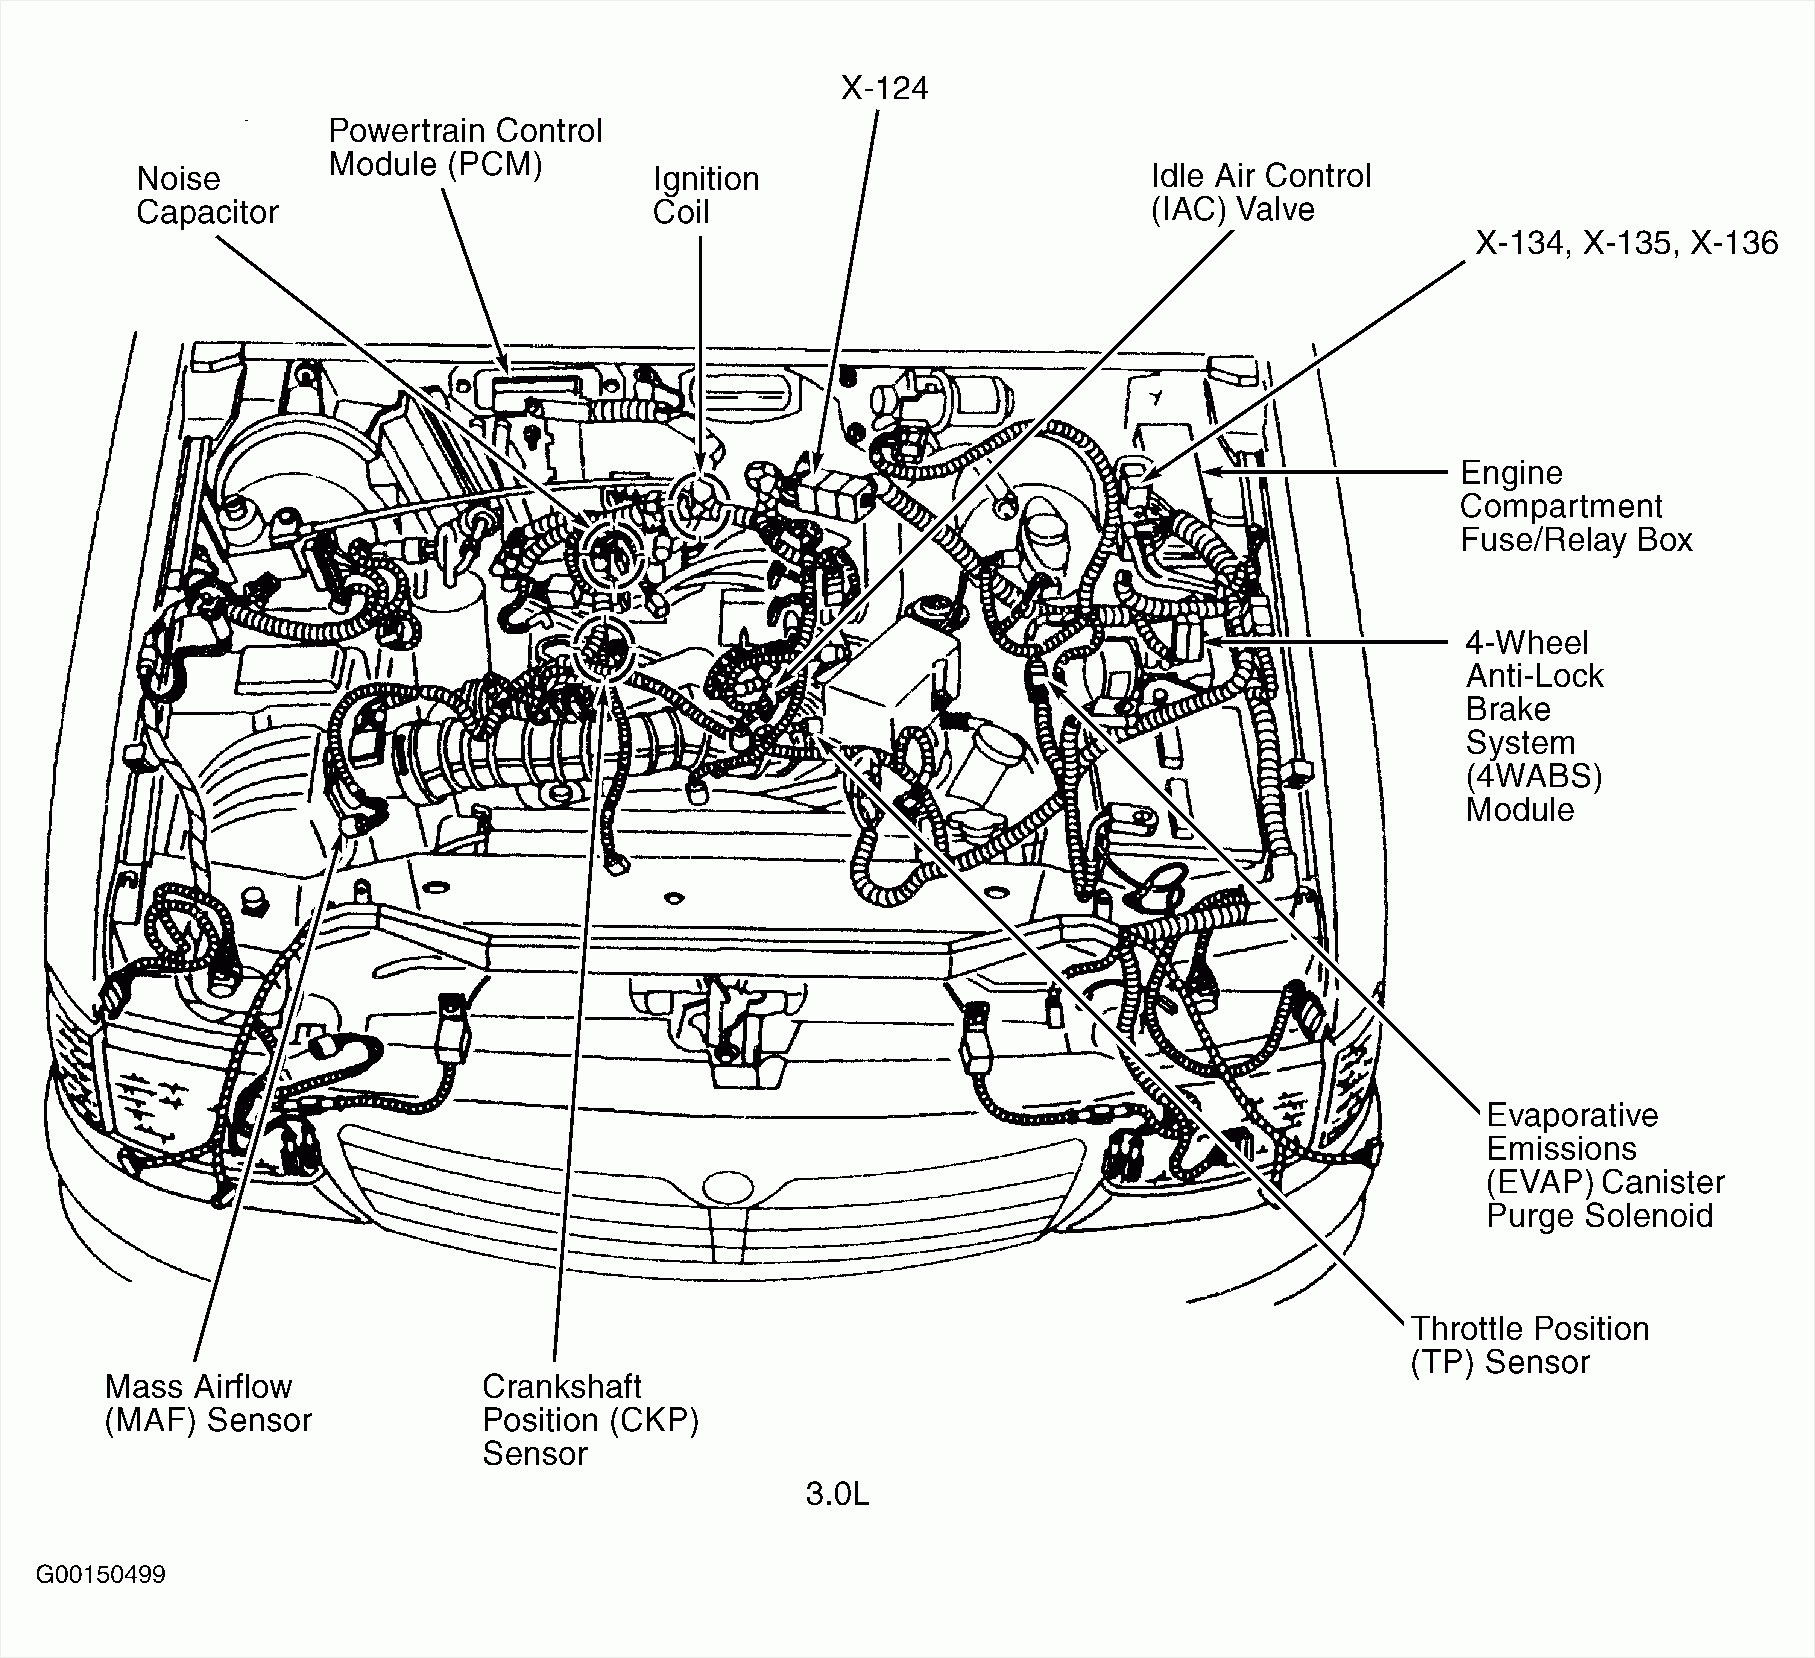 1999 Chevy Malibu Engine Diagram Unlimited Access To Wiring 1996 S10 4 Cylinder Car Parts And 3 1 Third Level Rh 10 11 13 Jacobwinterstein Com 1998 3100